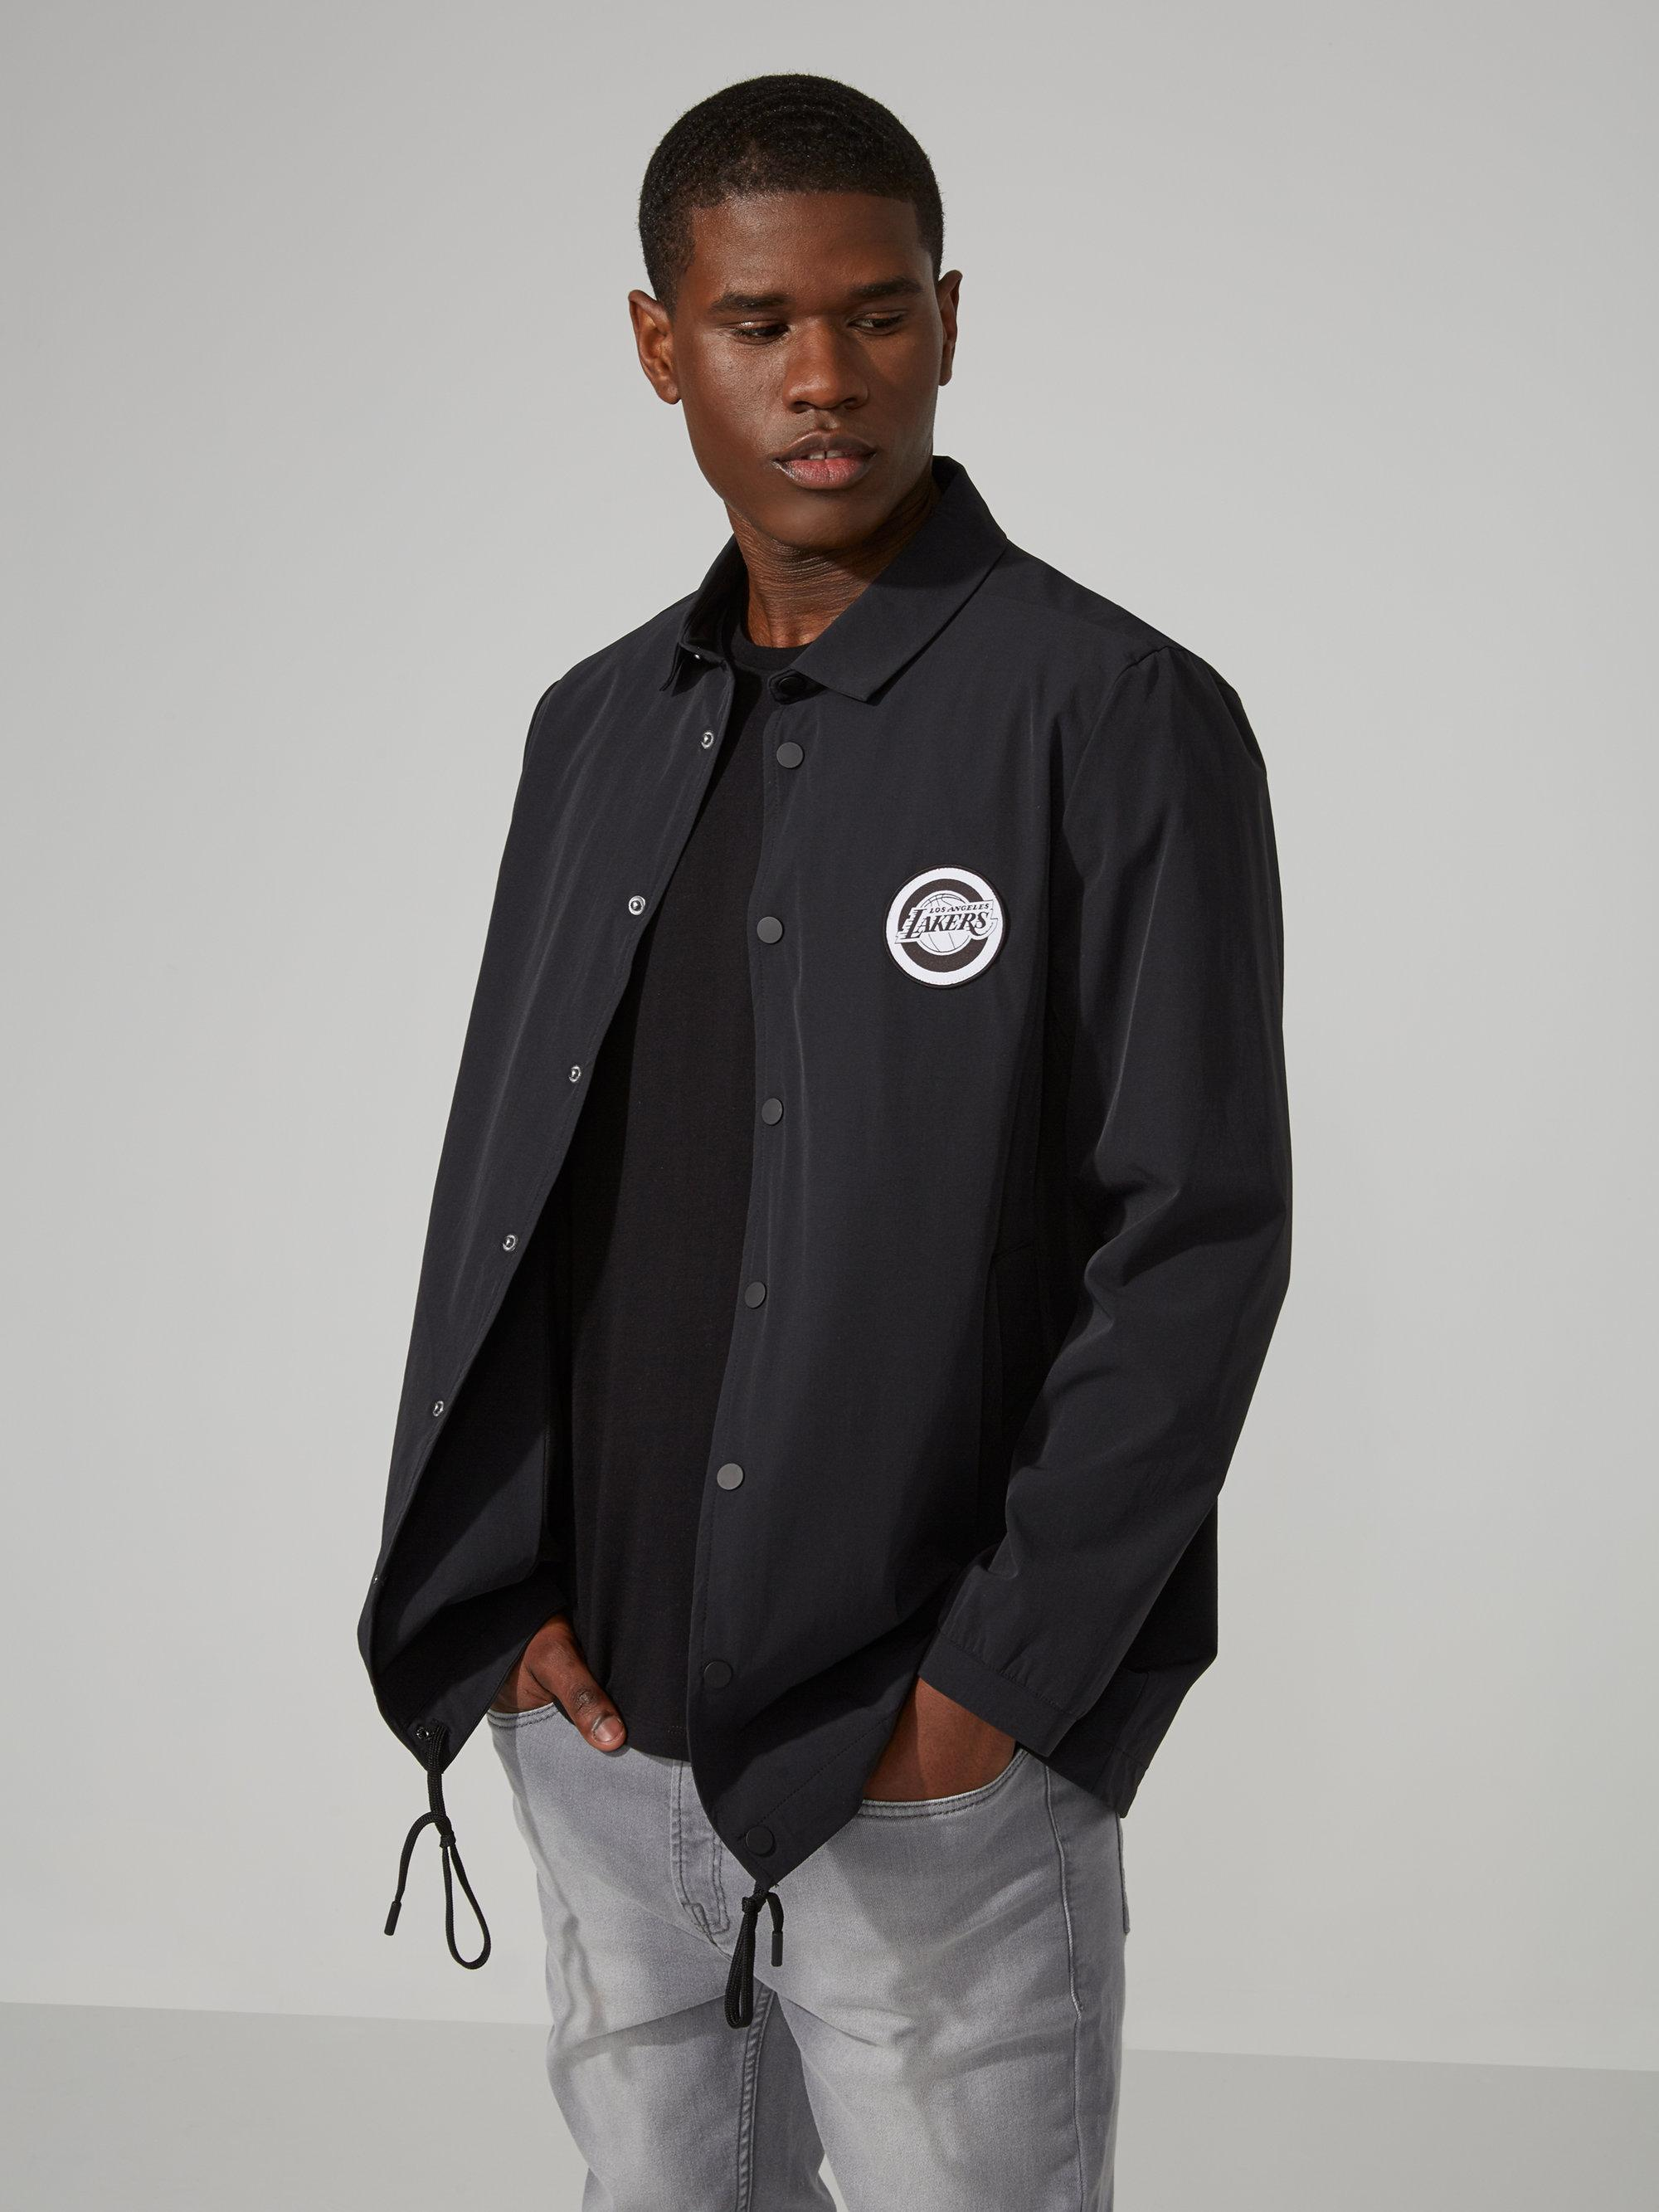 Lyst frank and oak l a lakers jacket in black in black for Frank and oak shirt